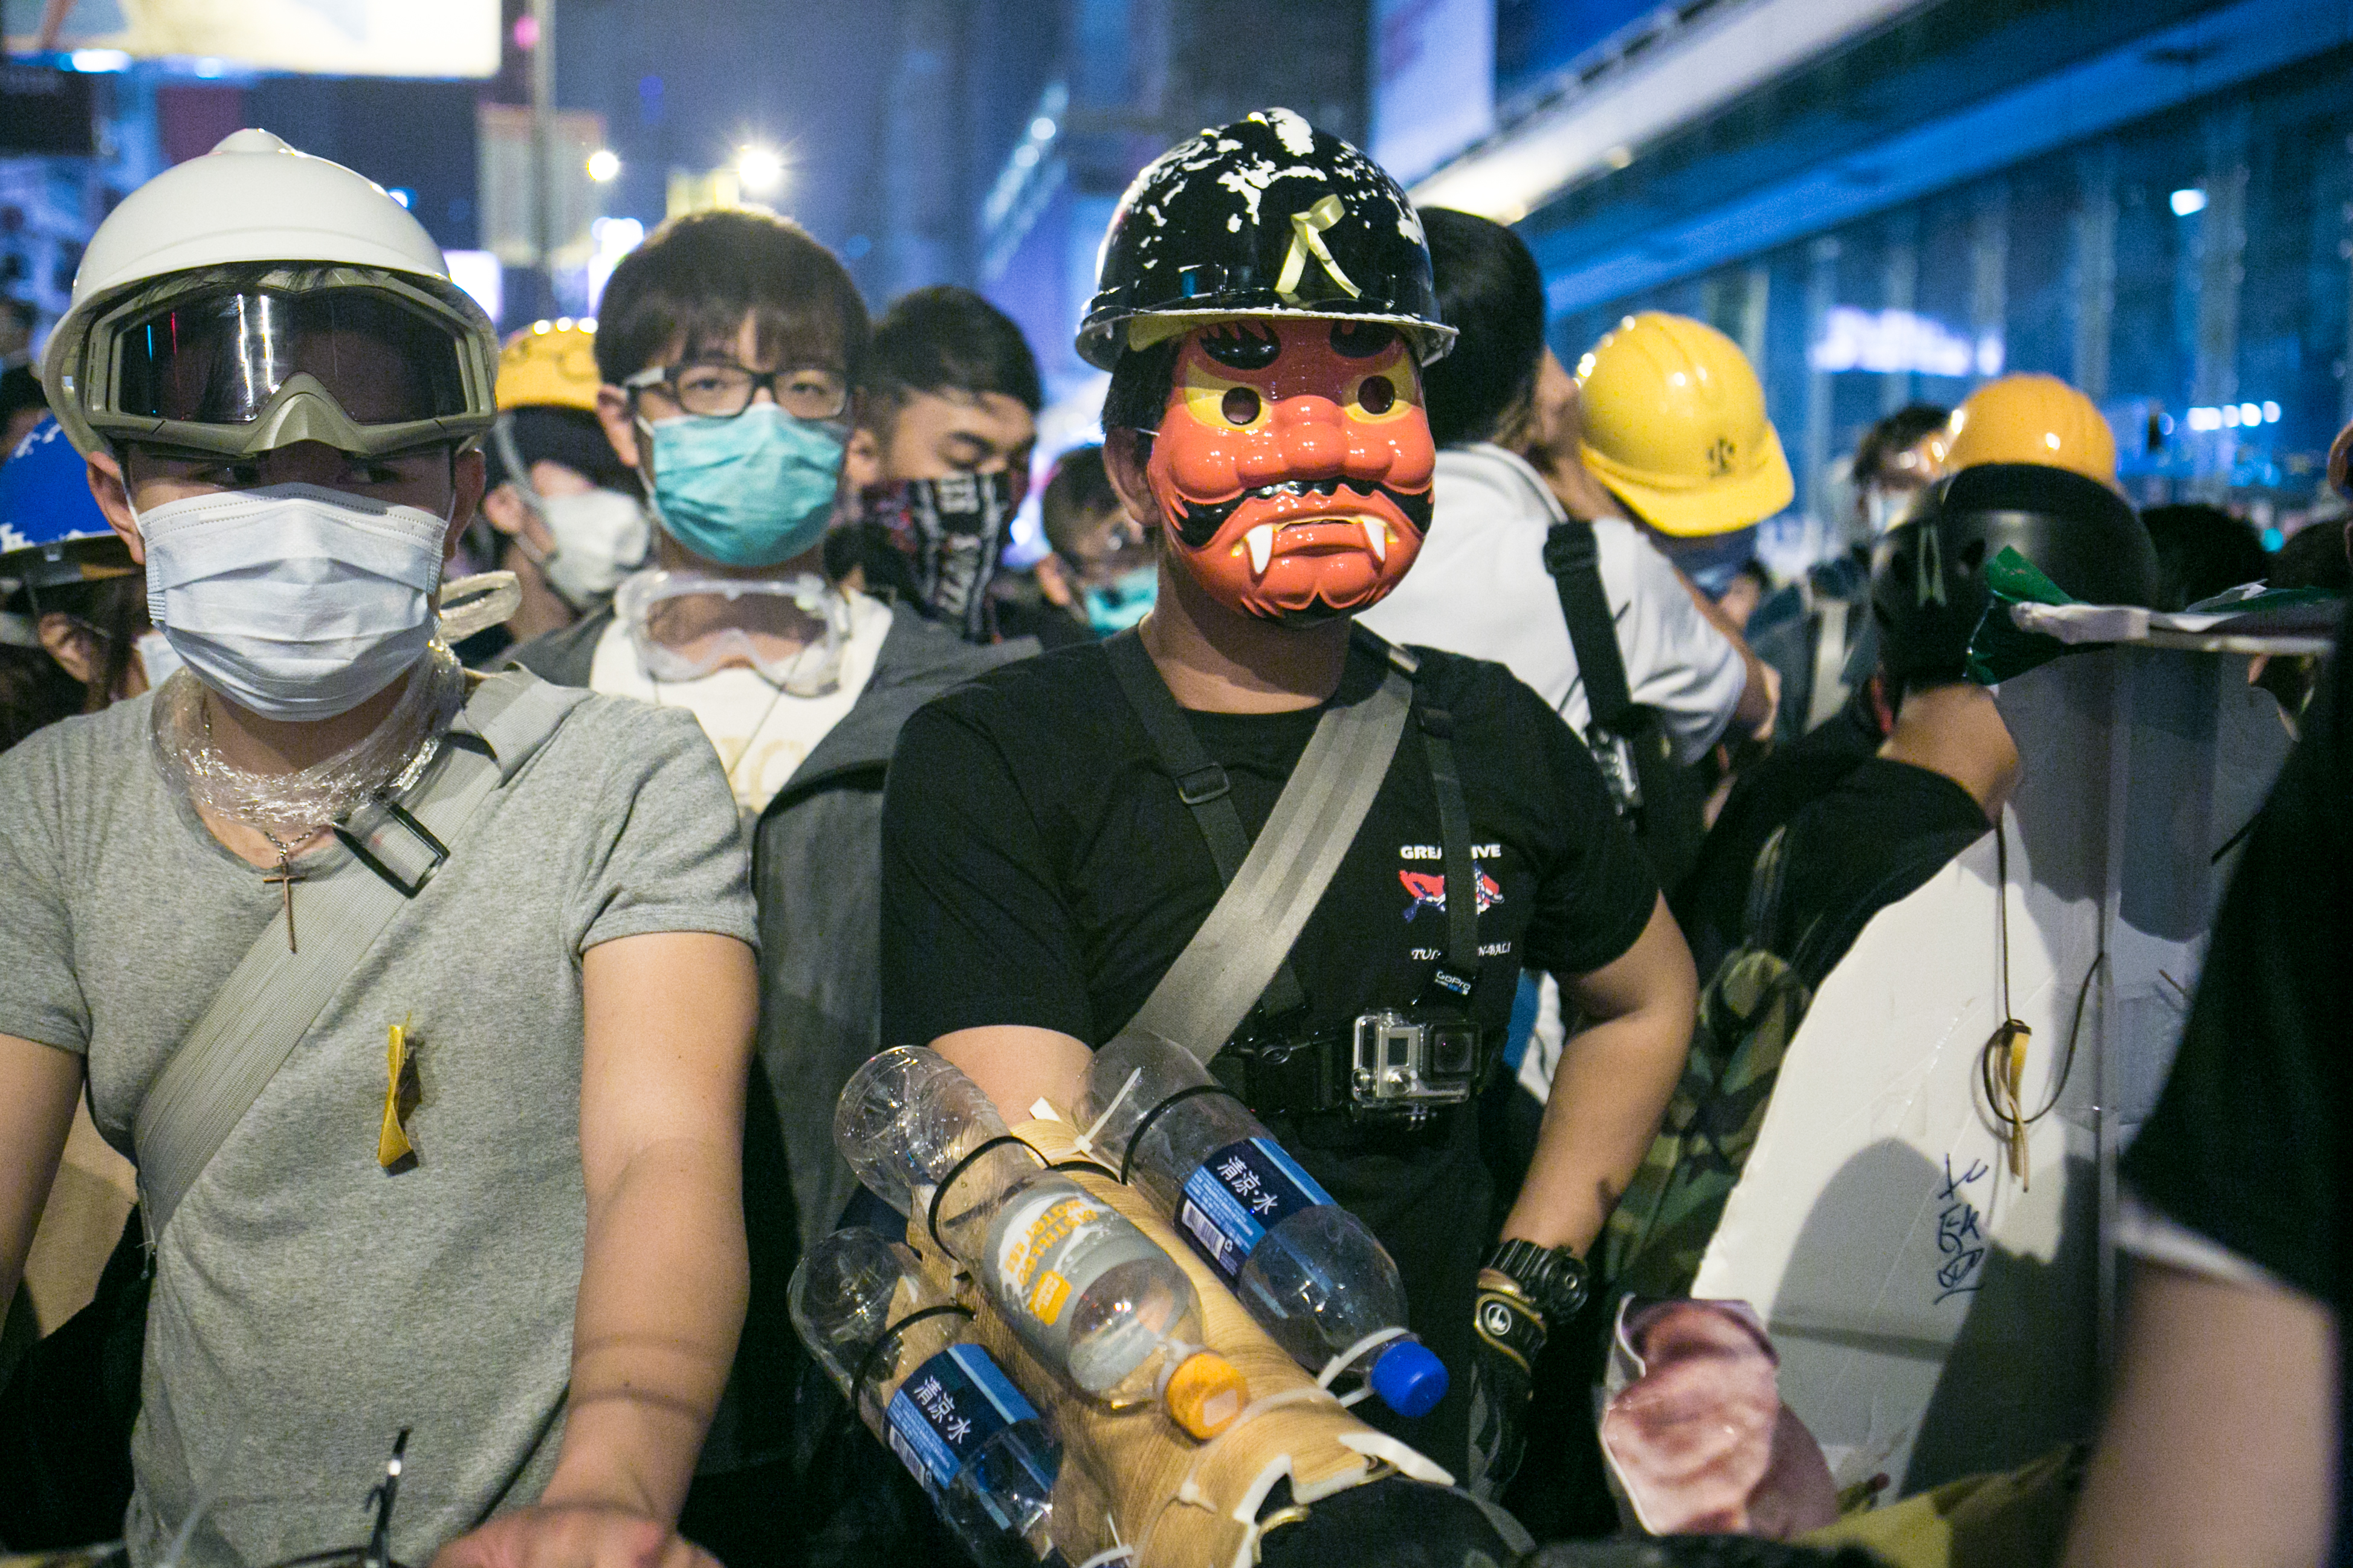 Hong Kong Uncensored: Police and Protesters Clash in Mong Kok